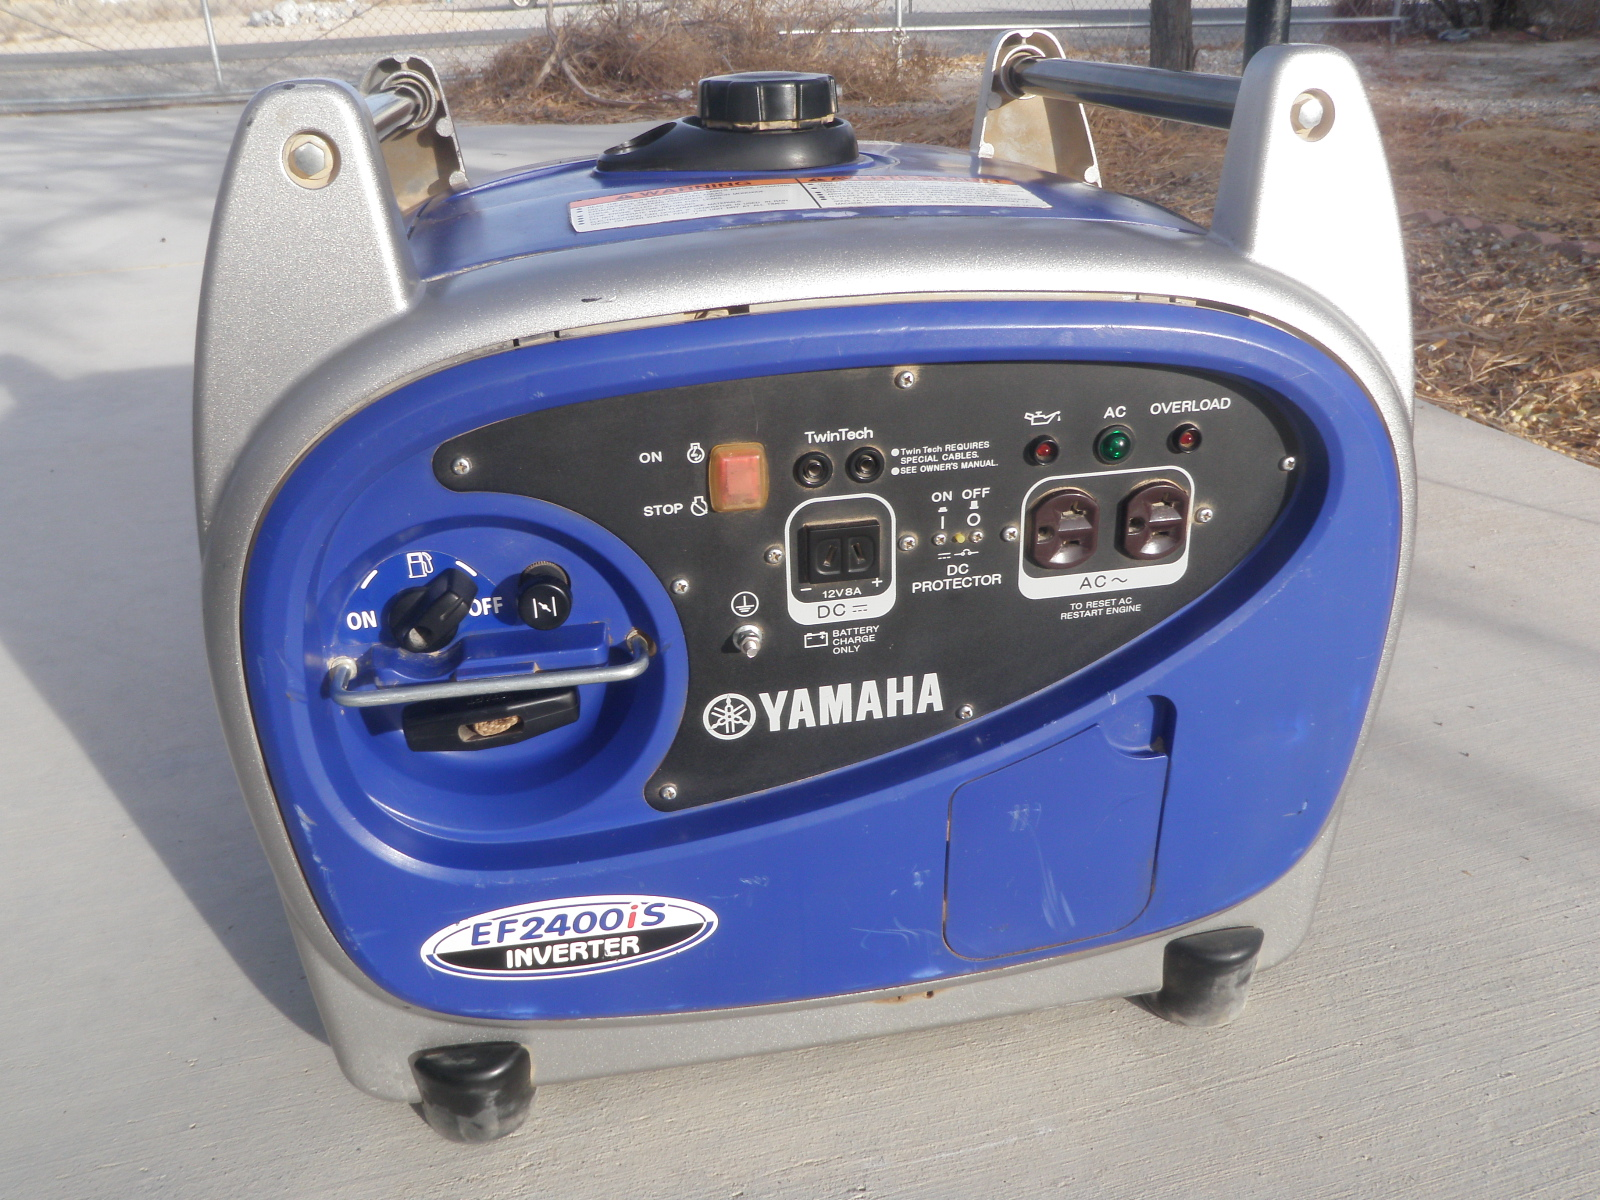 Yamaha generator ef2400is inverter sold rv 39 s for Yamaha generator for sale